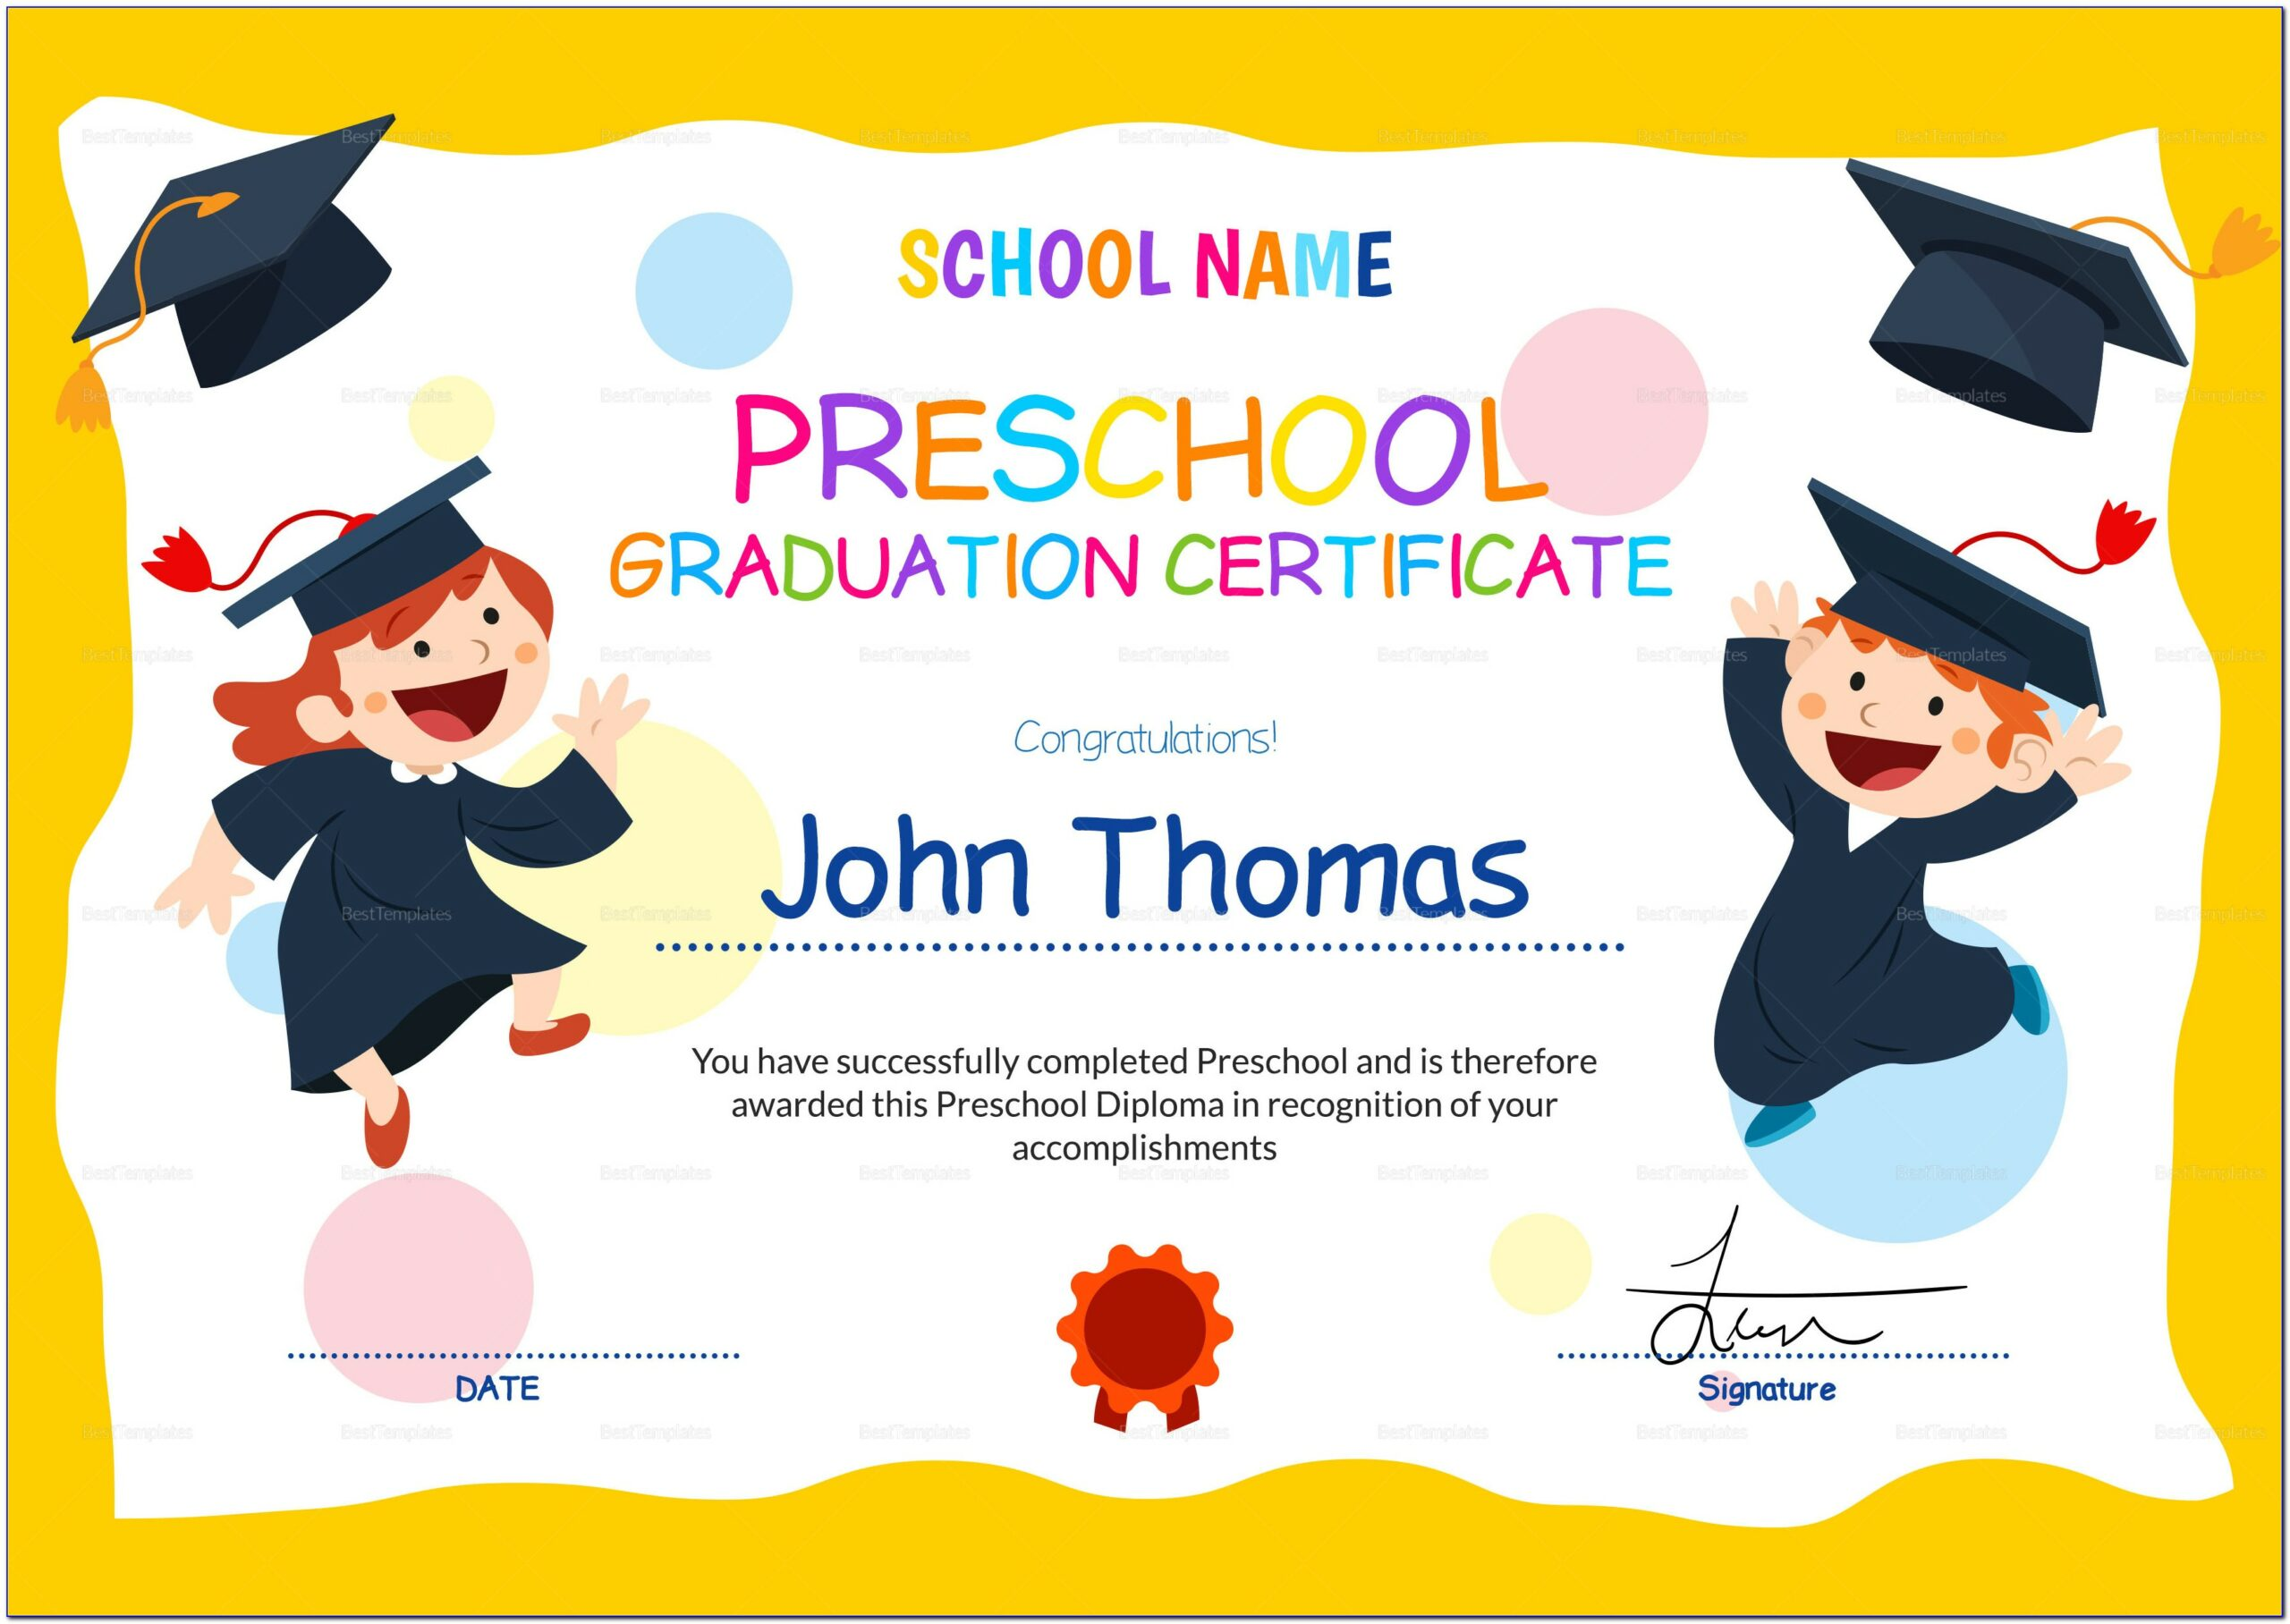 Preschool Graduation Certificate Templates Free Download